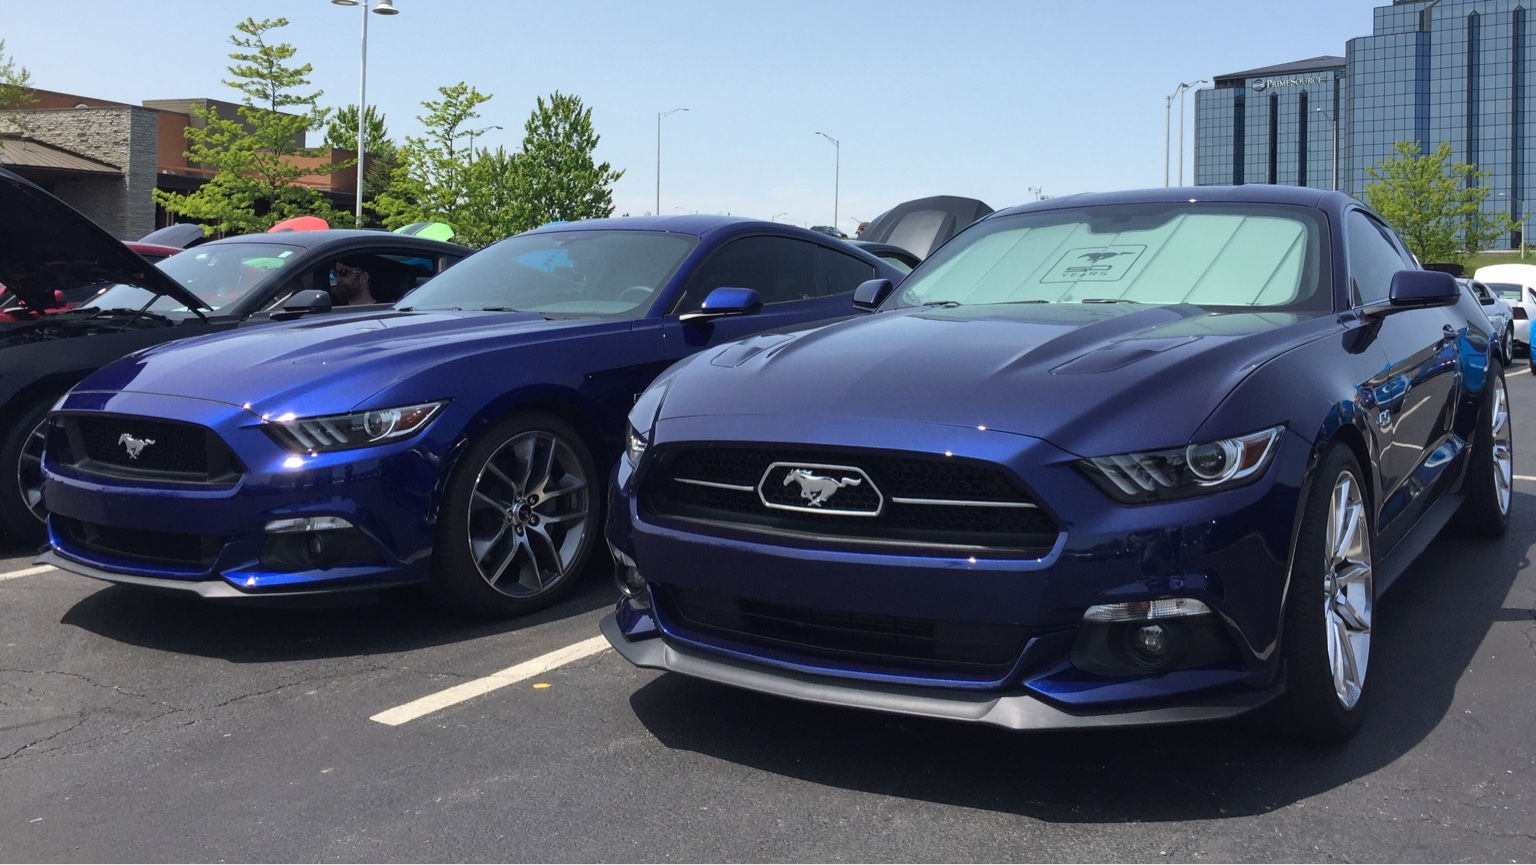 2017 Mustang Shelby Gt350 Black >> Kona Blue 2018 GT350 Pre-Production Photos | Page 2 ...